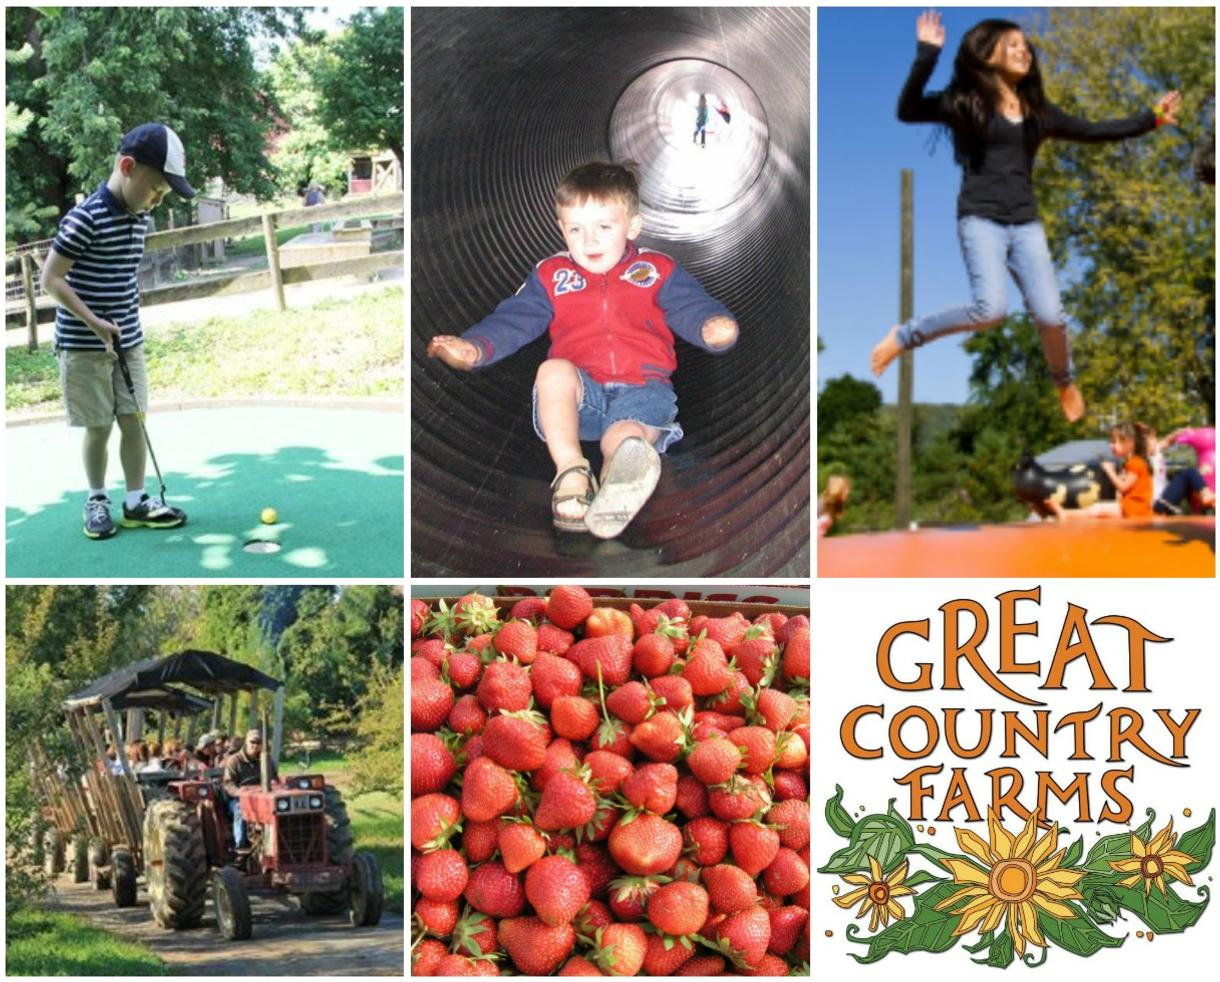 $5 for Great Country Farms Admission - April 3rd - May 12th (60% Off)